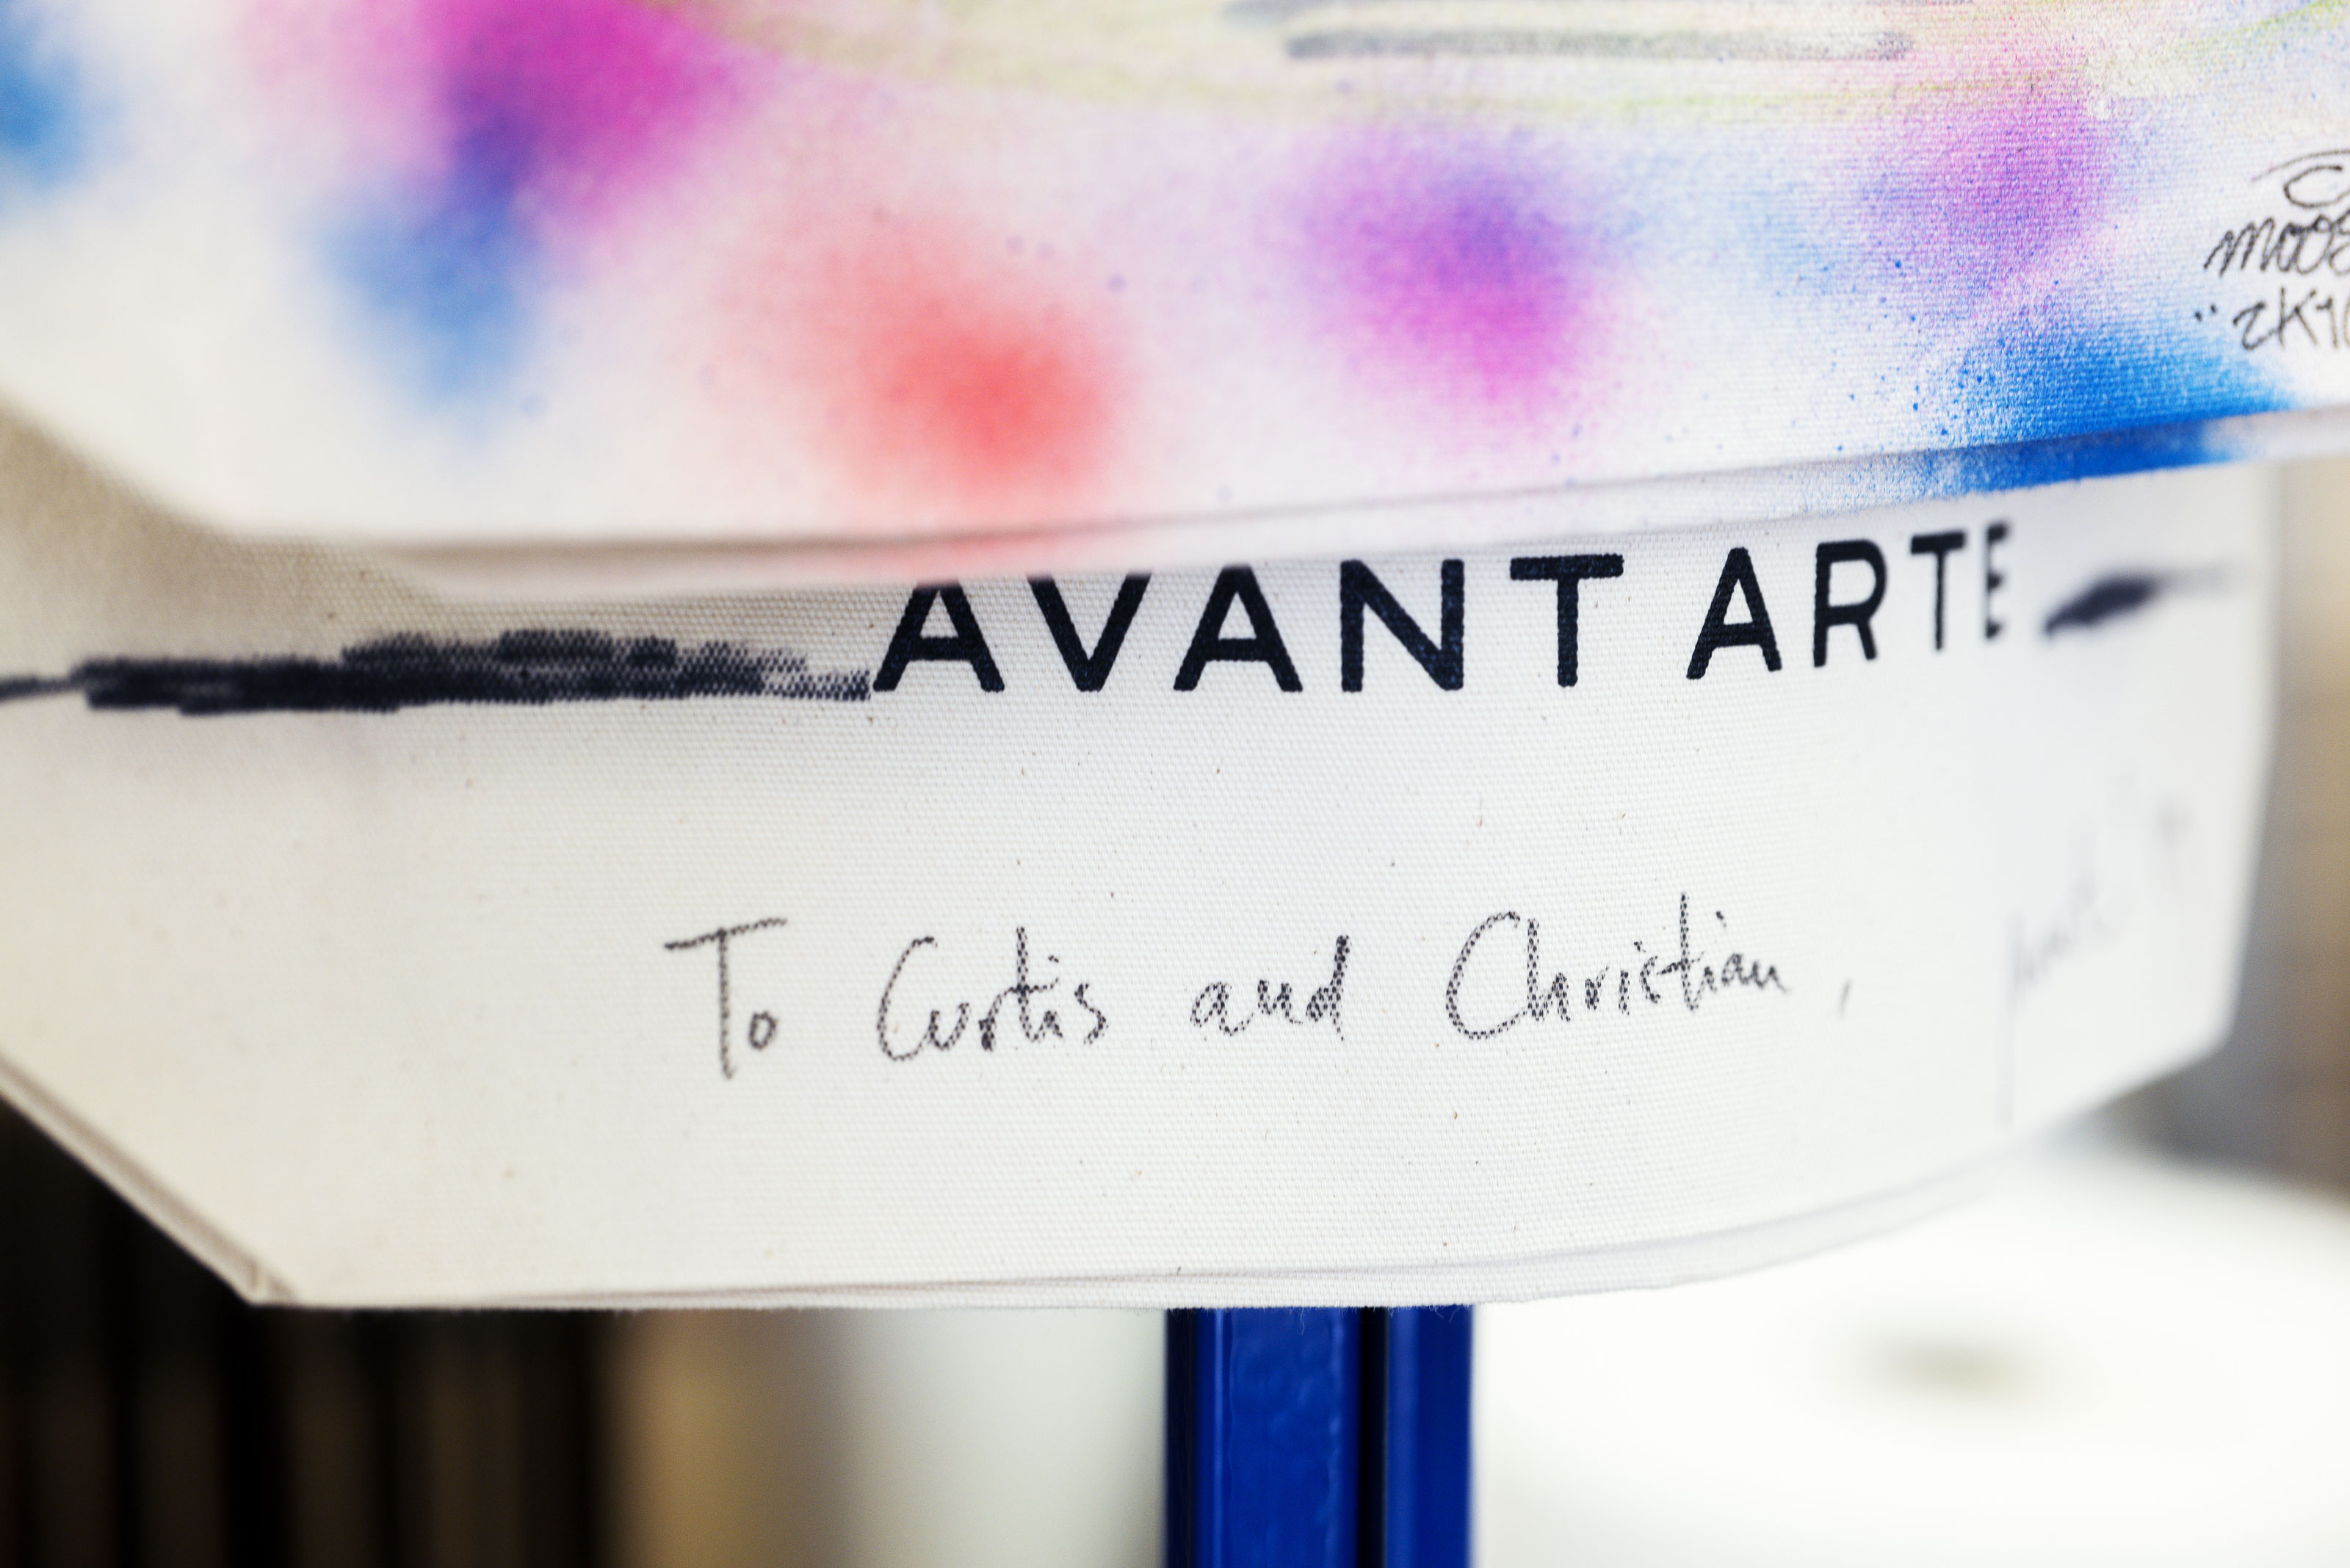 Avant Arte schilderen label To Curtis and Christian